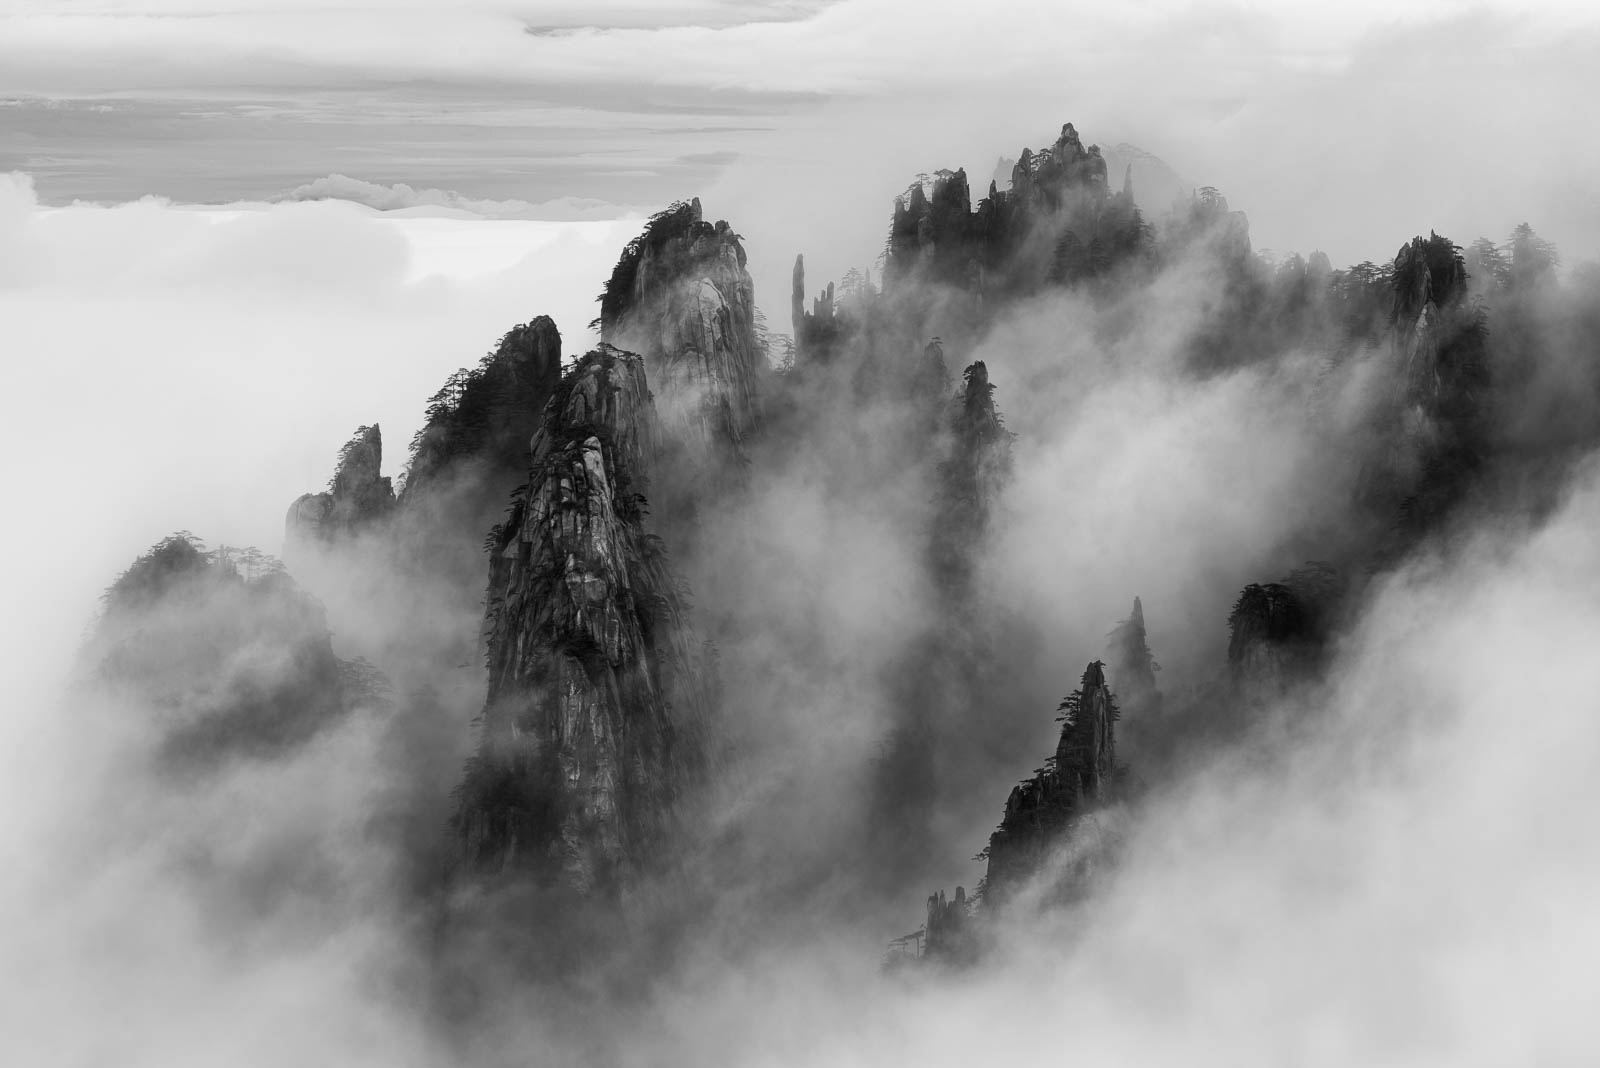 Chinese Whispers - Views from the Huangshan mountains of China.